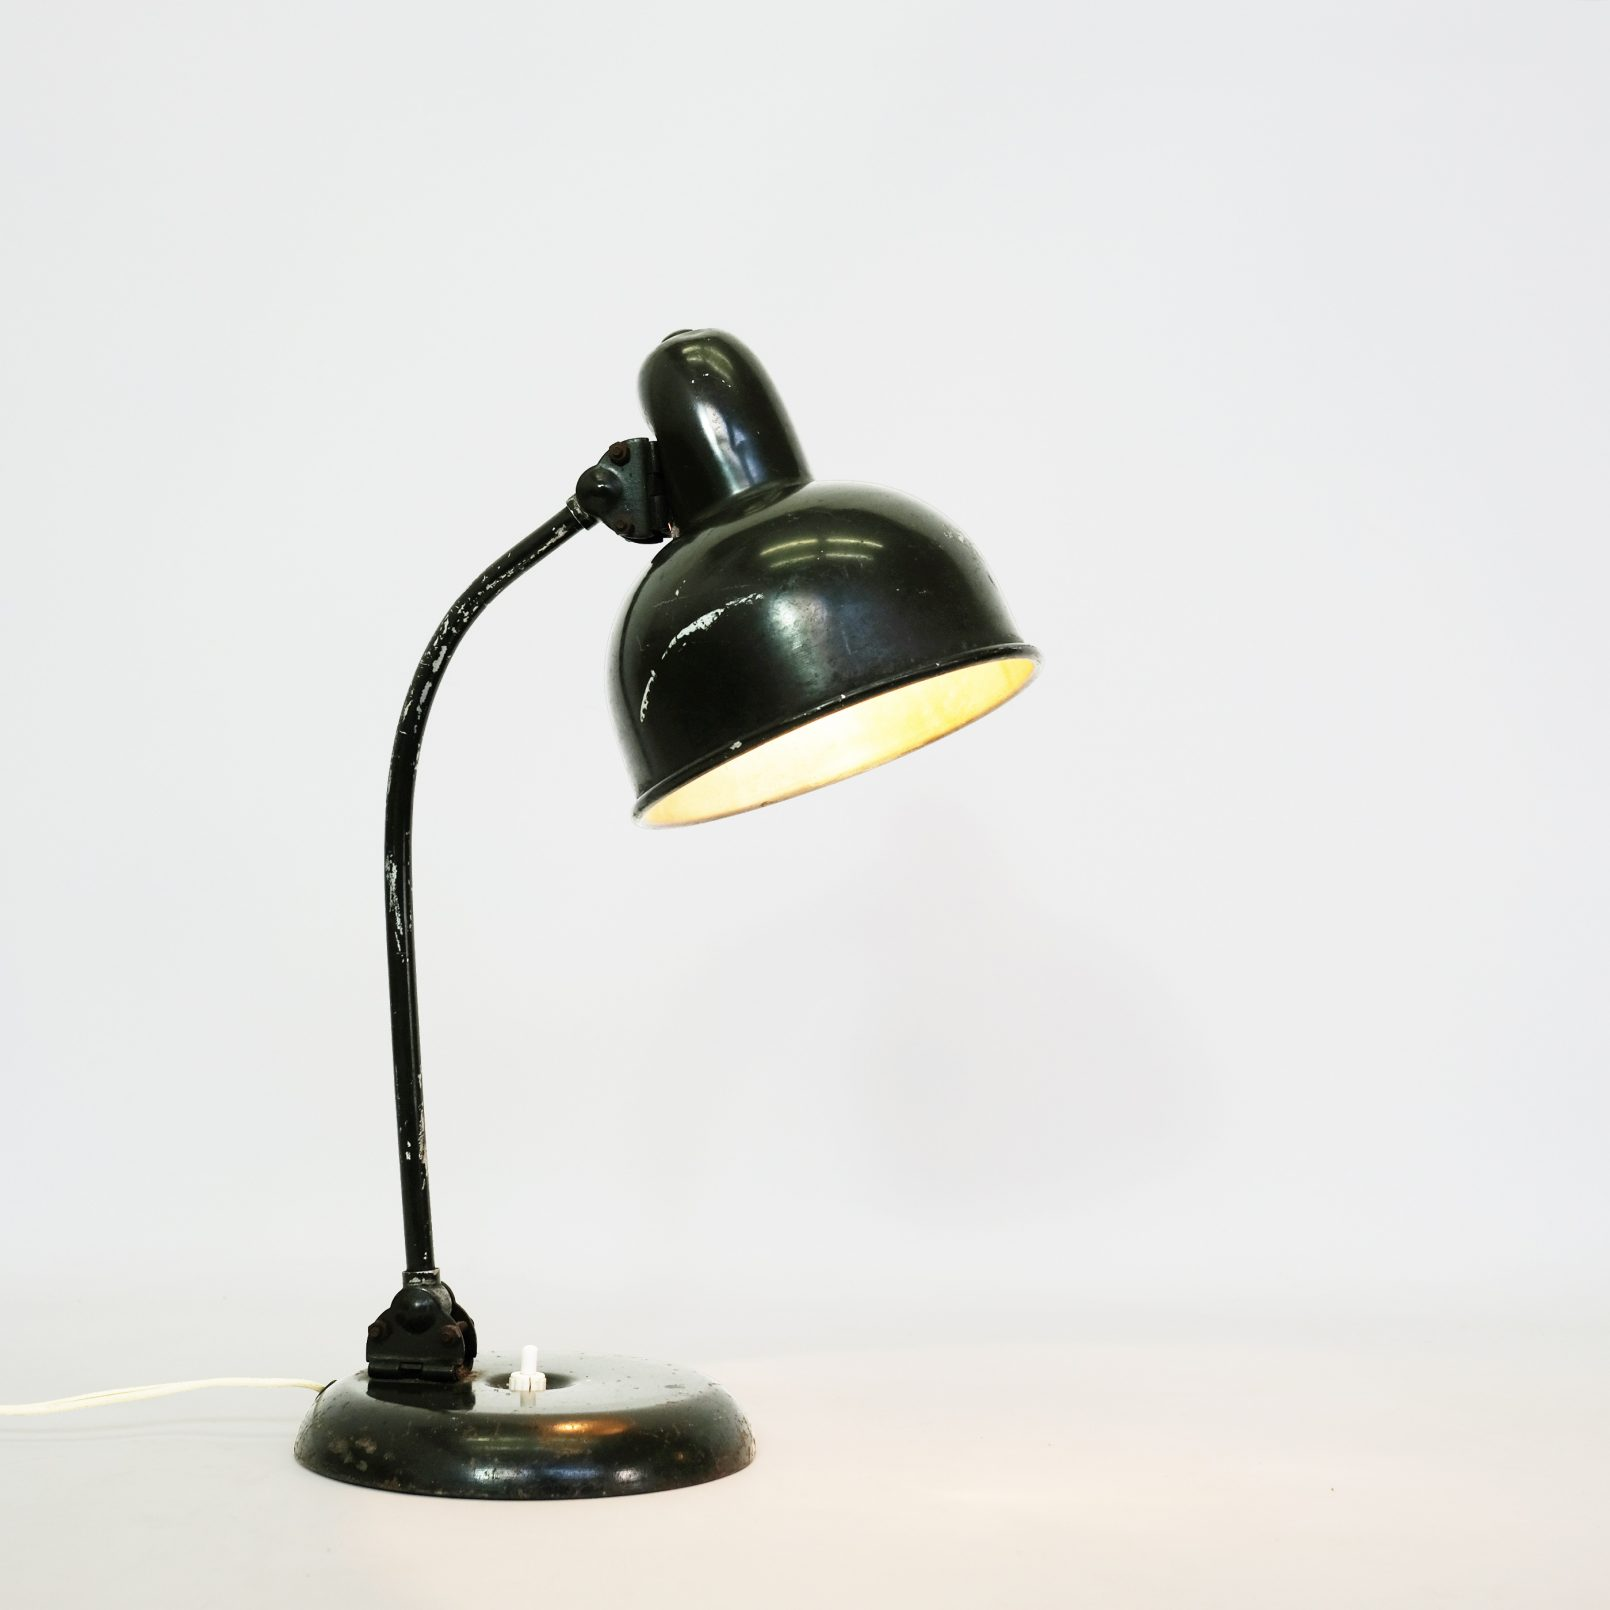 French industrial lamp from the 1950s-1960s.